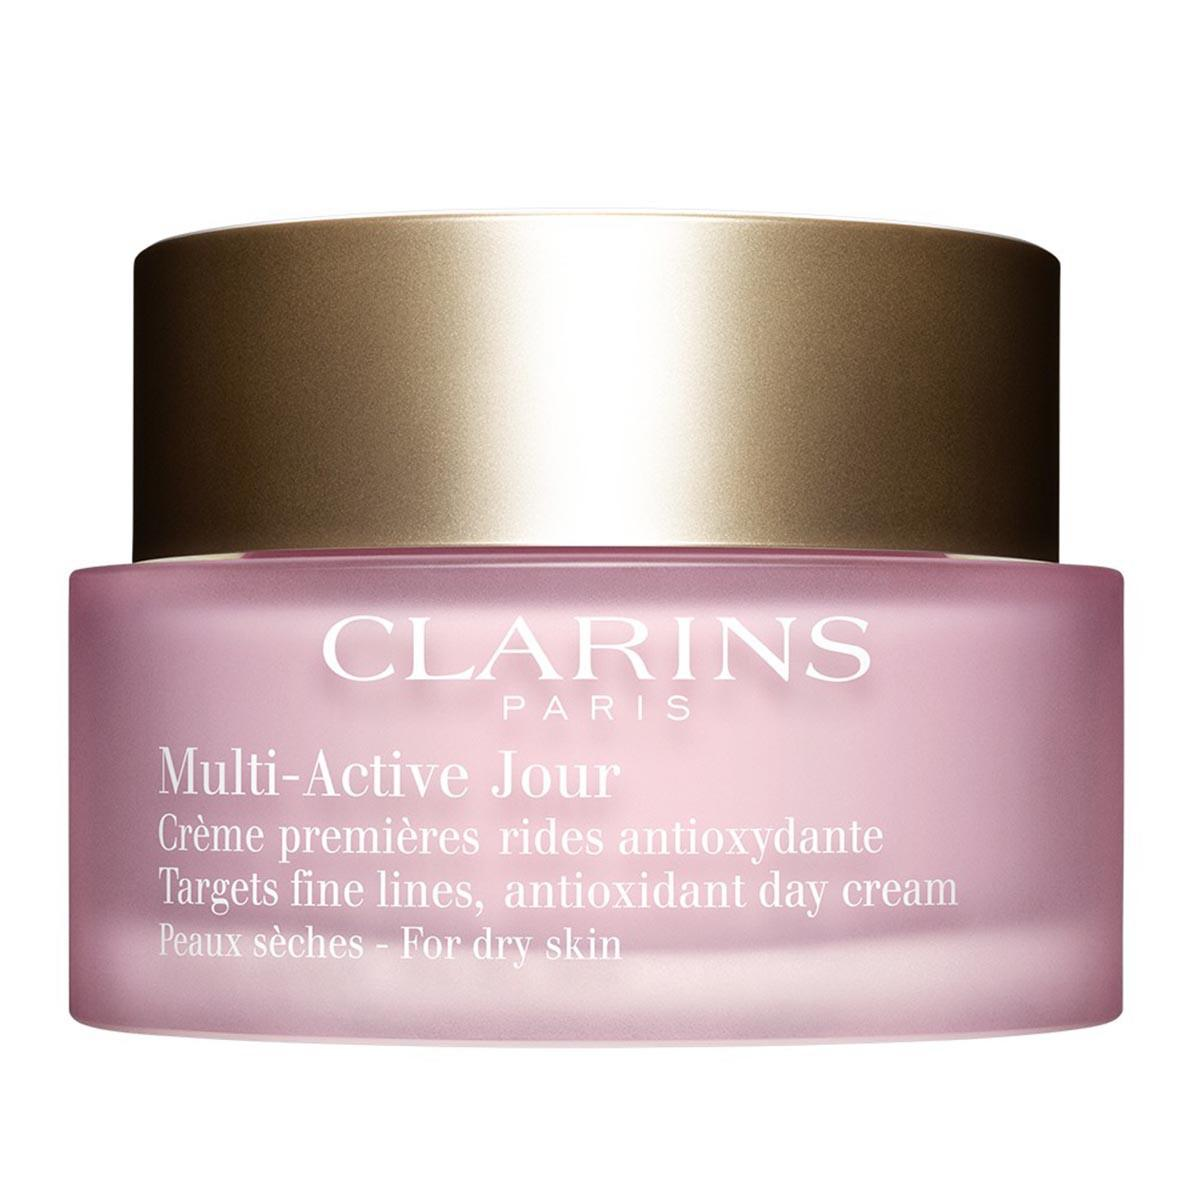 Clarins Multiactive Day Cream For Dry Skin 50 ml